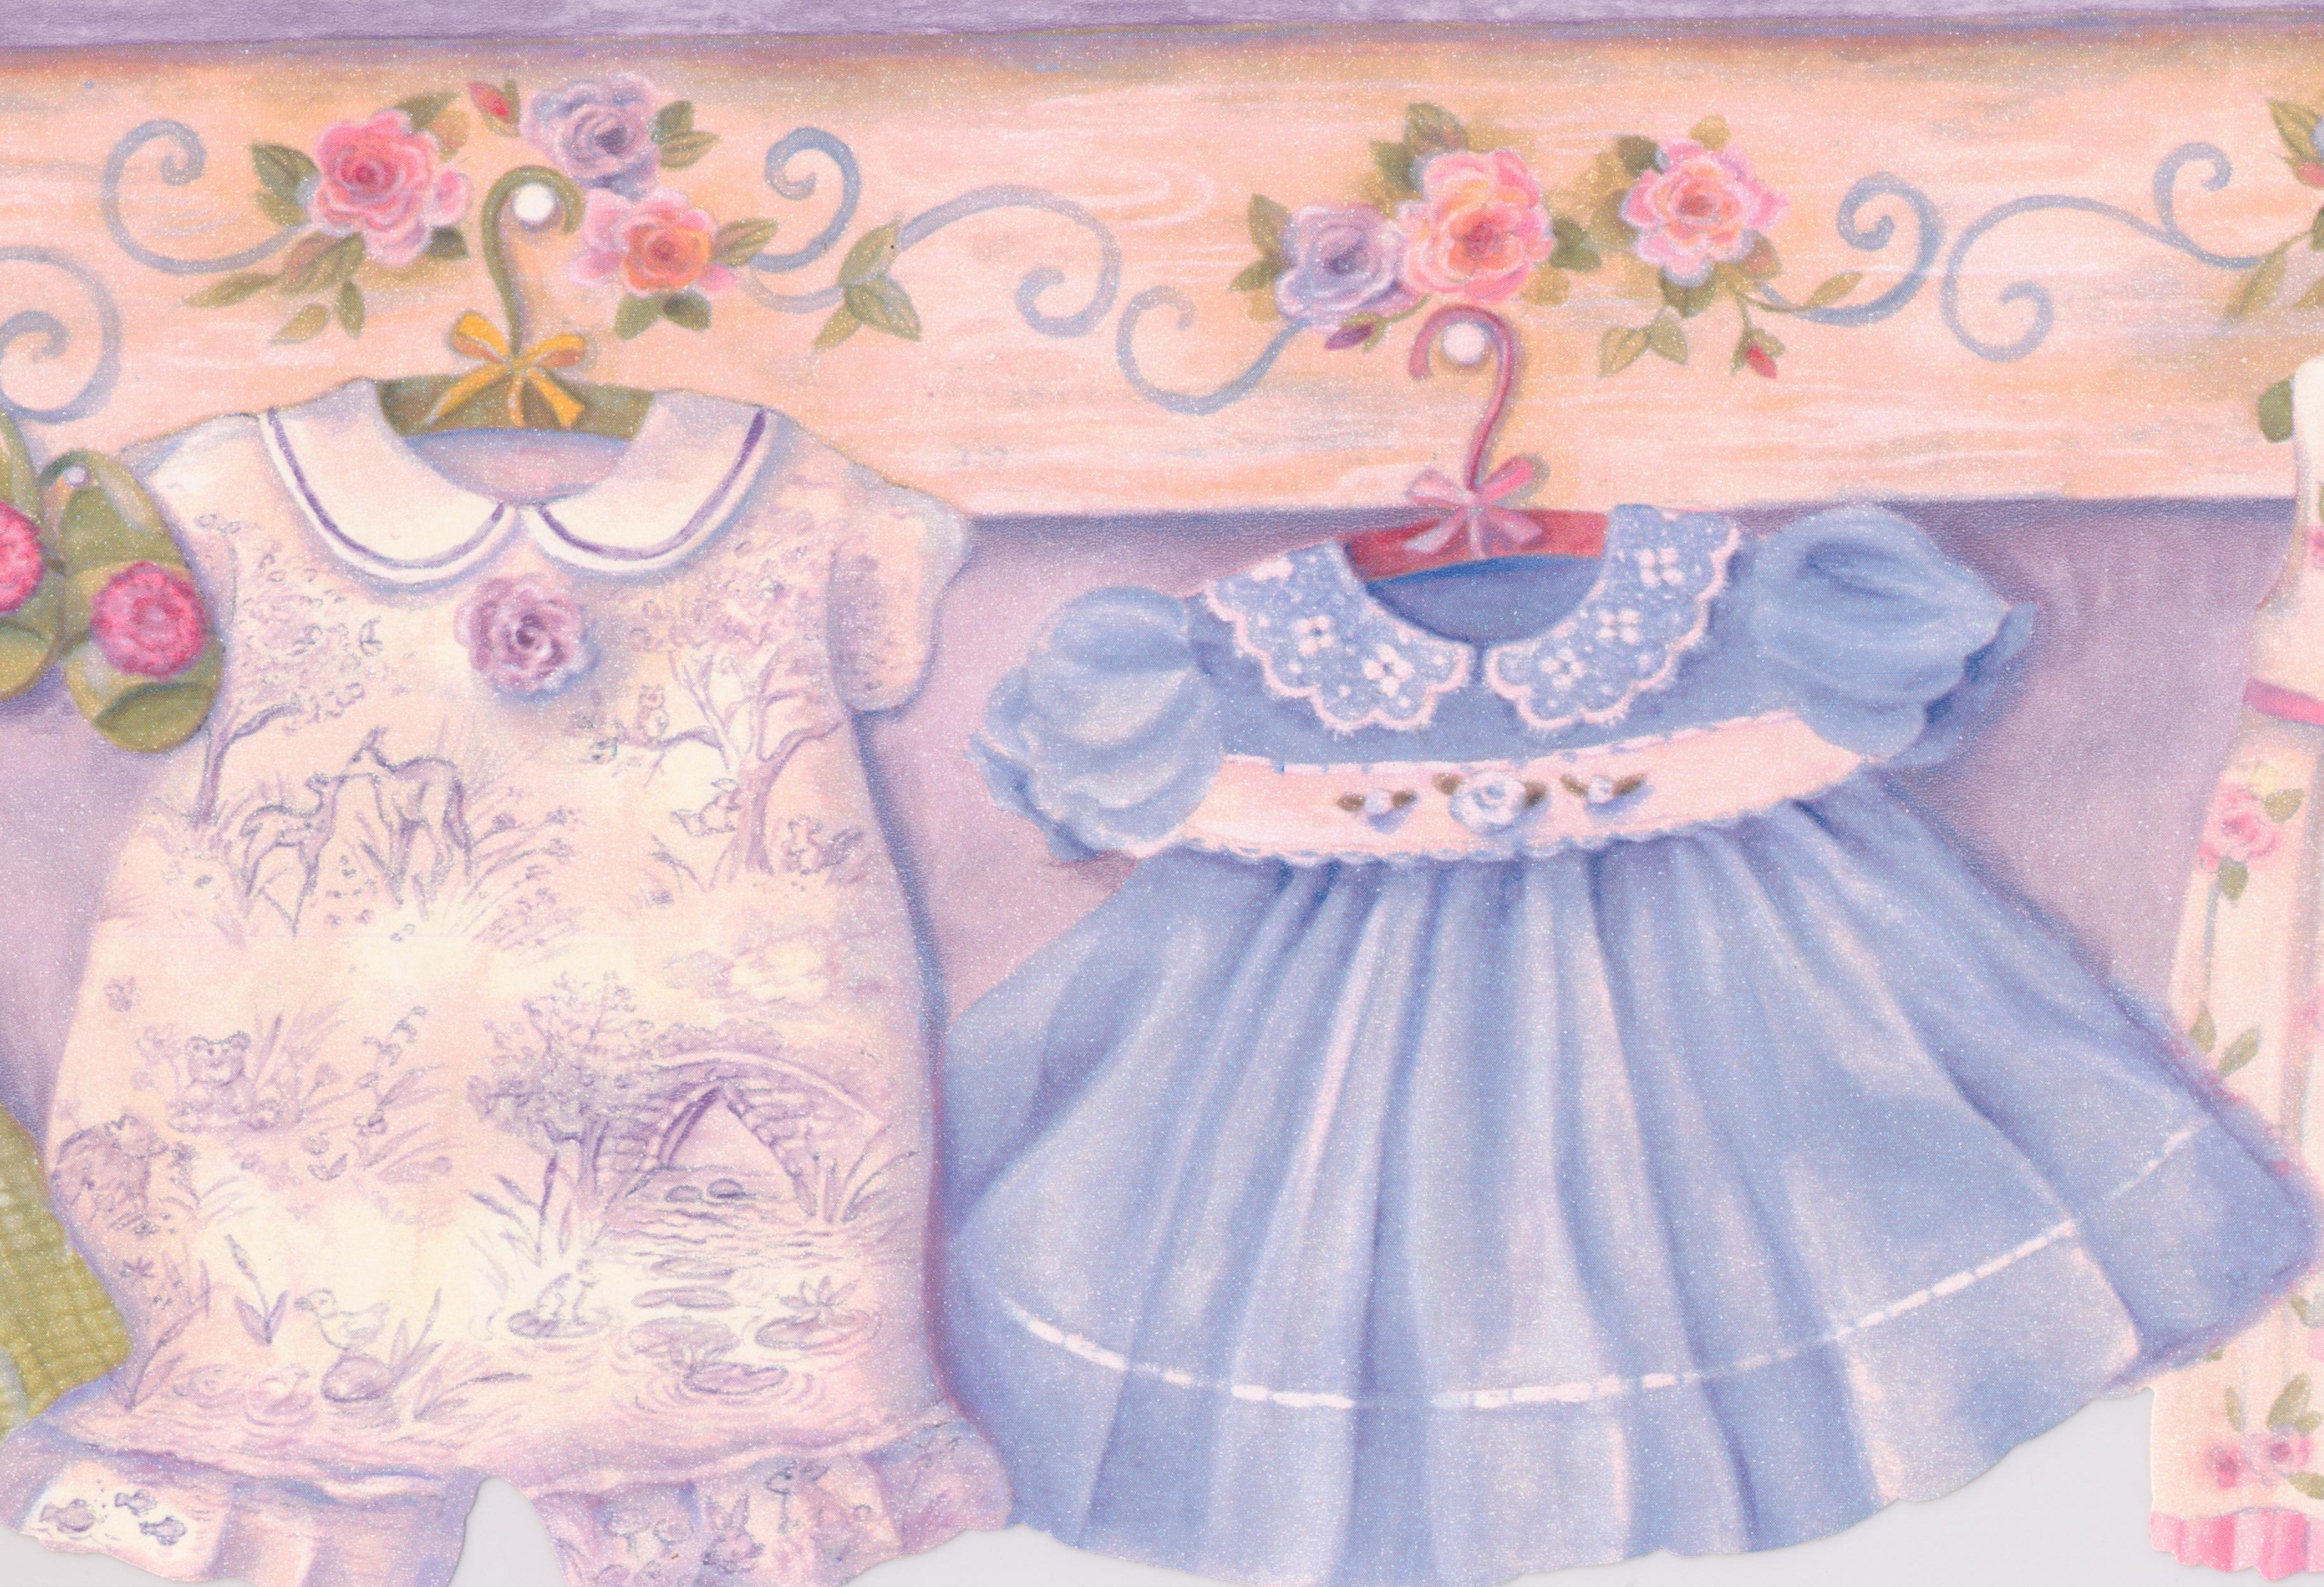 Baby Clothes Kids Wallpaper Border for Cottage Kitchen Bathroom 3673x2508